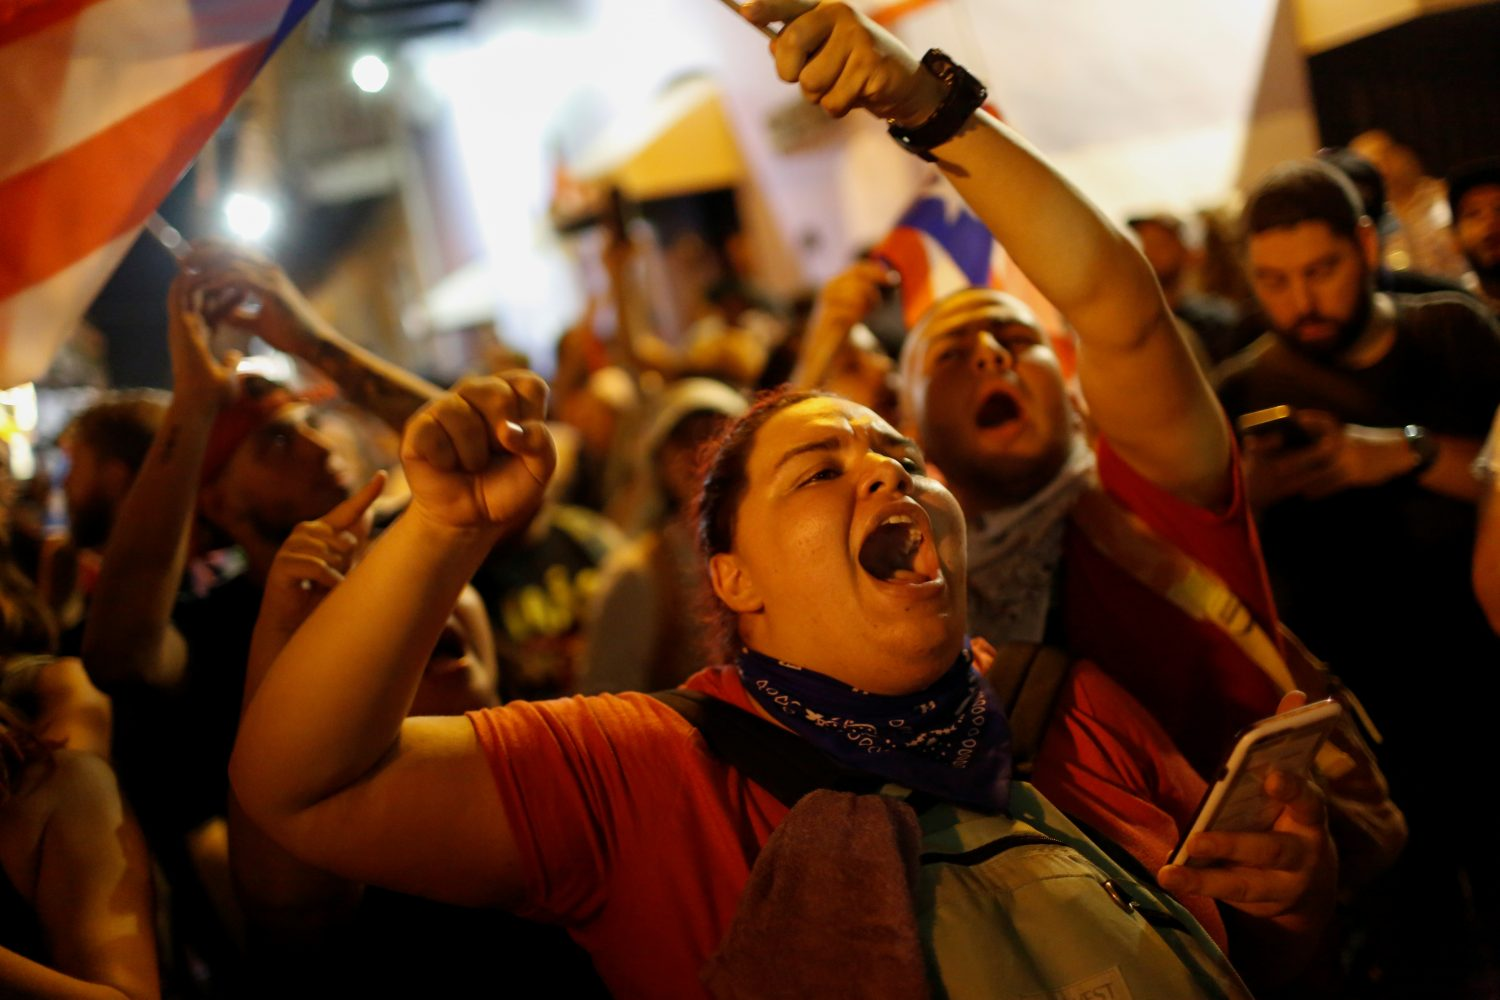 A woman shouts during ongoing protests calling for the resignation of Governor Ricardo Rossello in San Juan, Puerto Rico July 23, 2019. REUTERS/Marco Bello